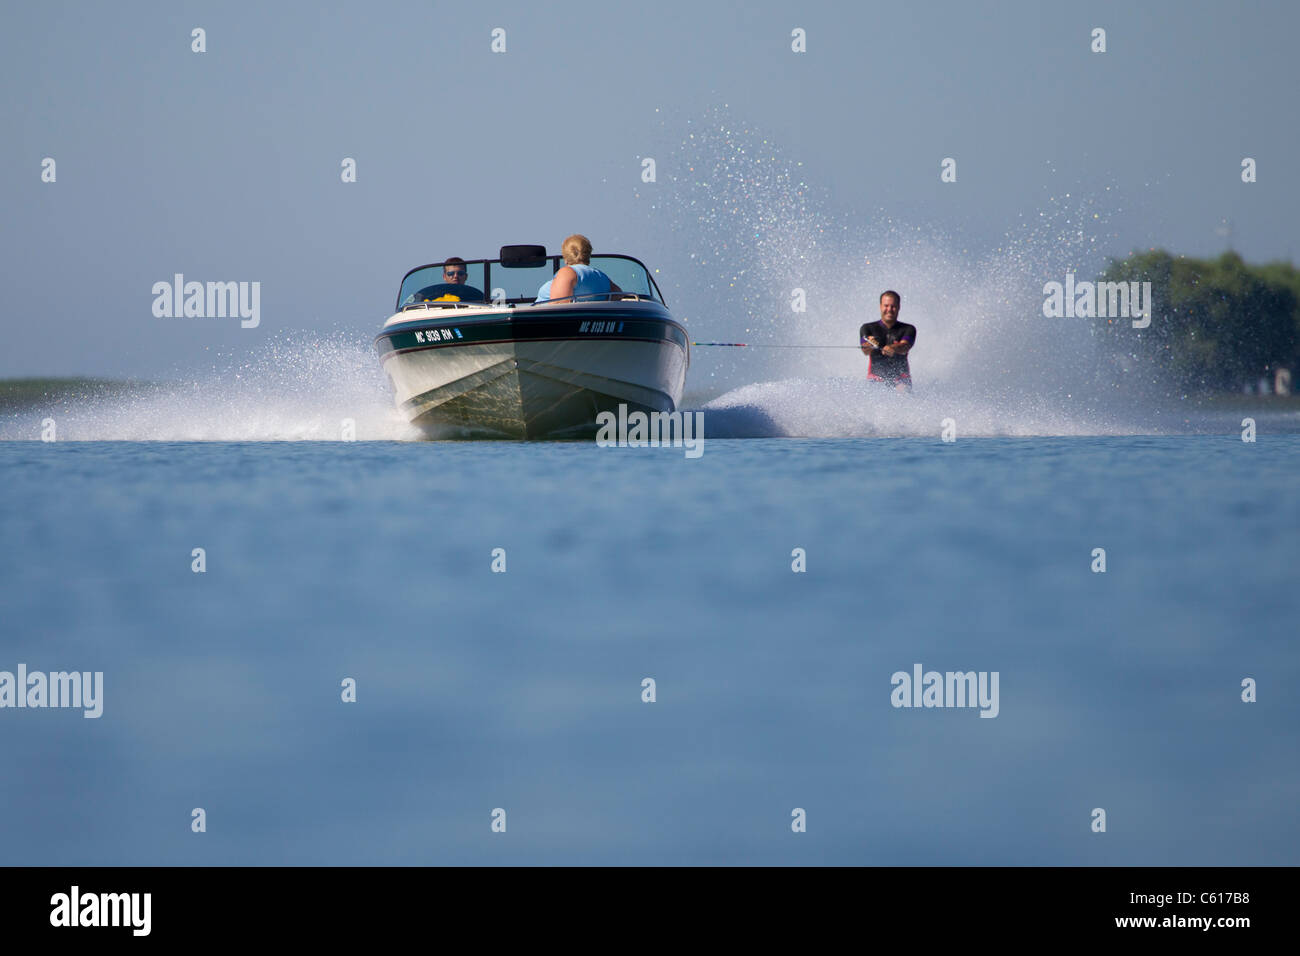 A fast approaching ski boat pulling a barefoot waterskier. - Stock Image